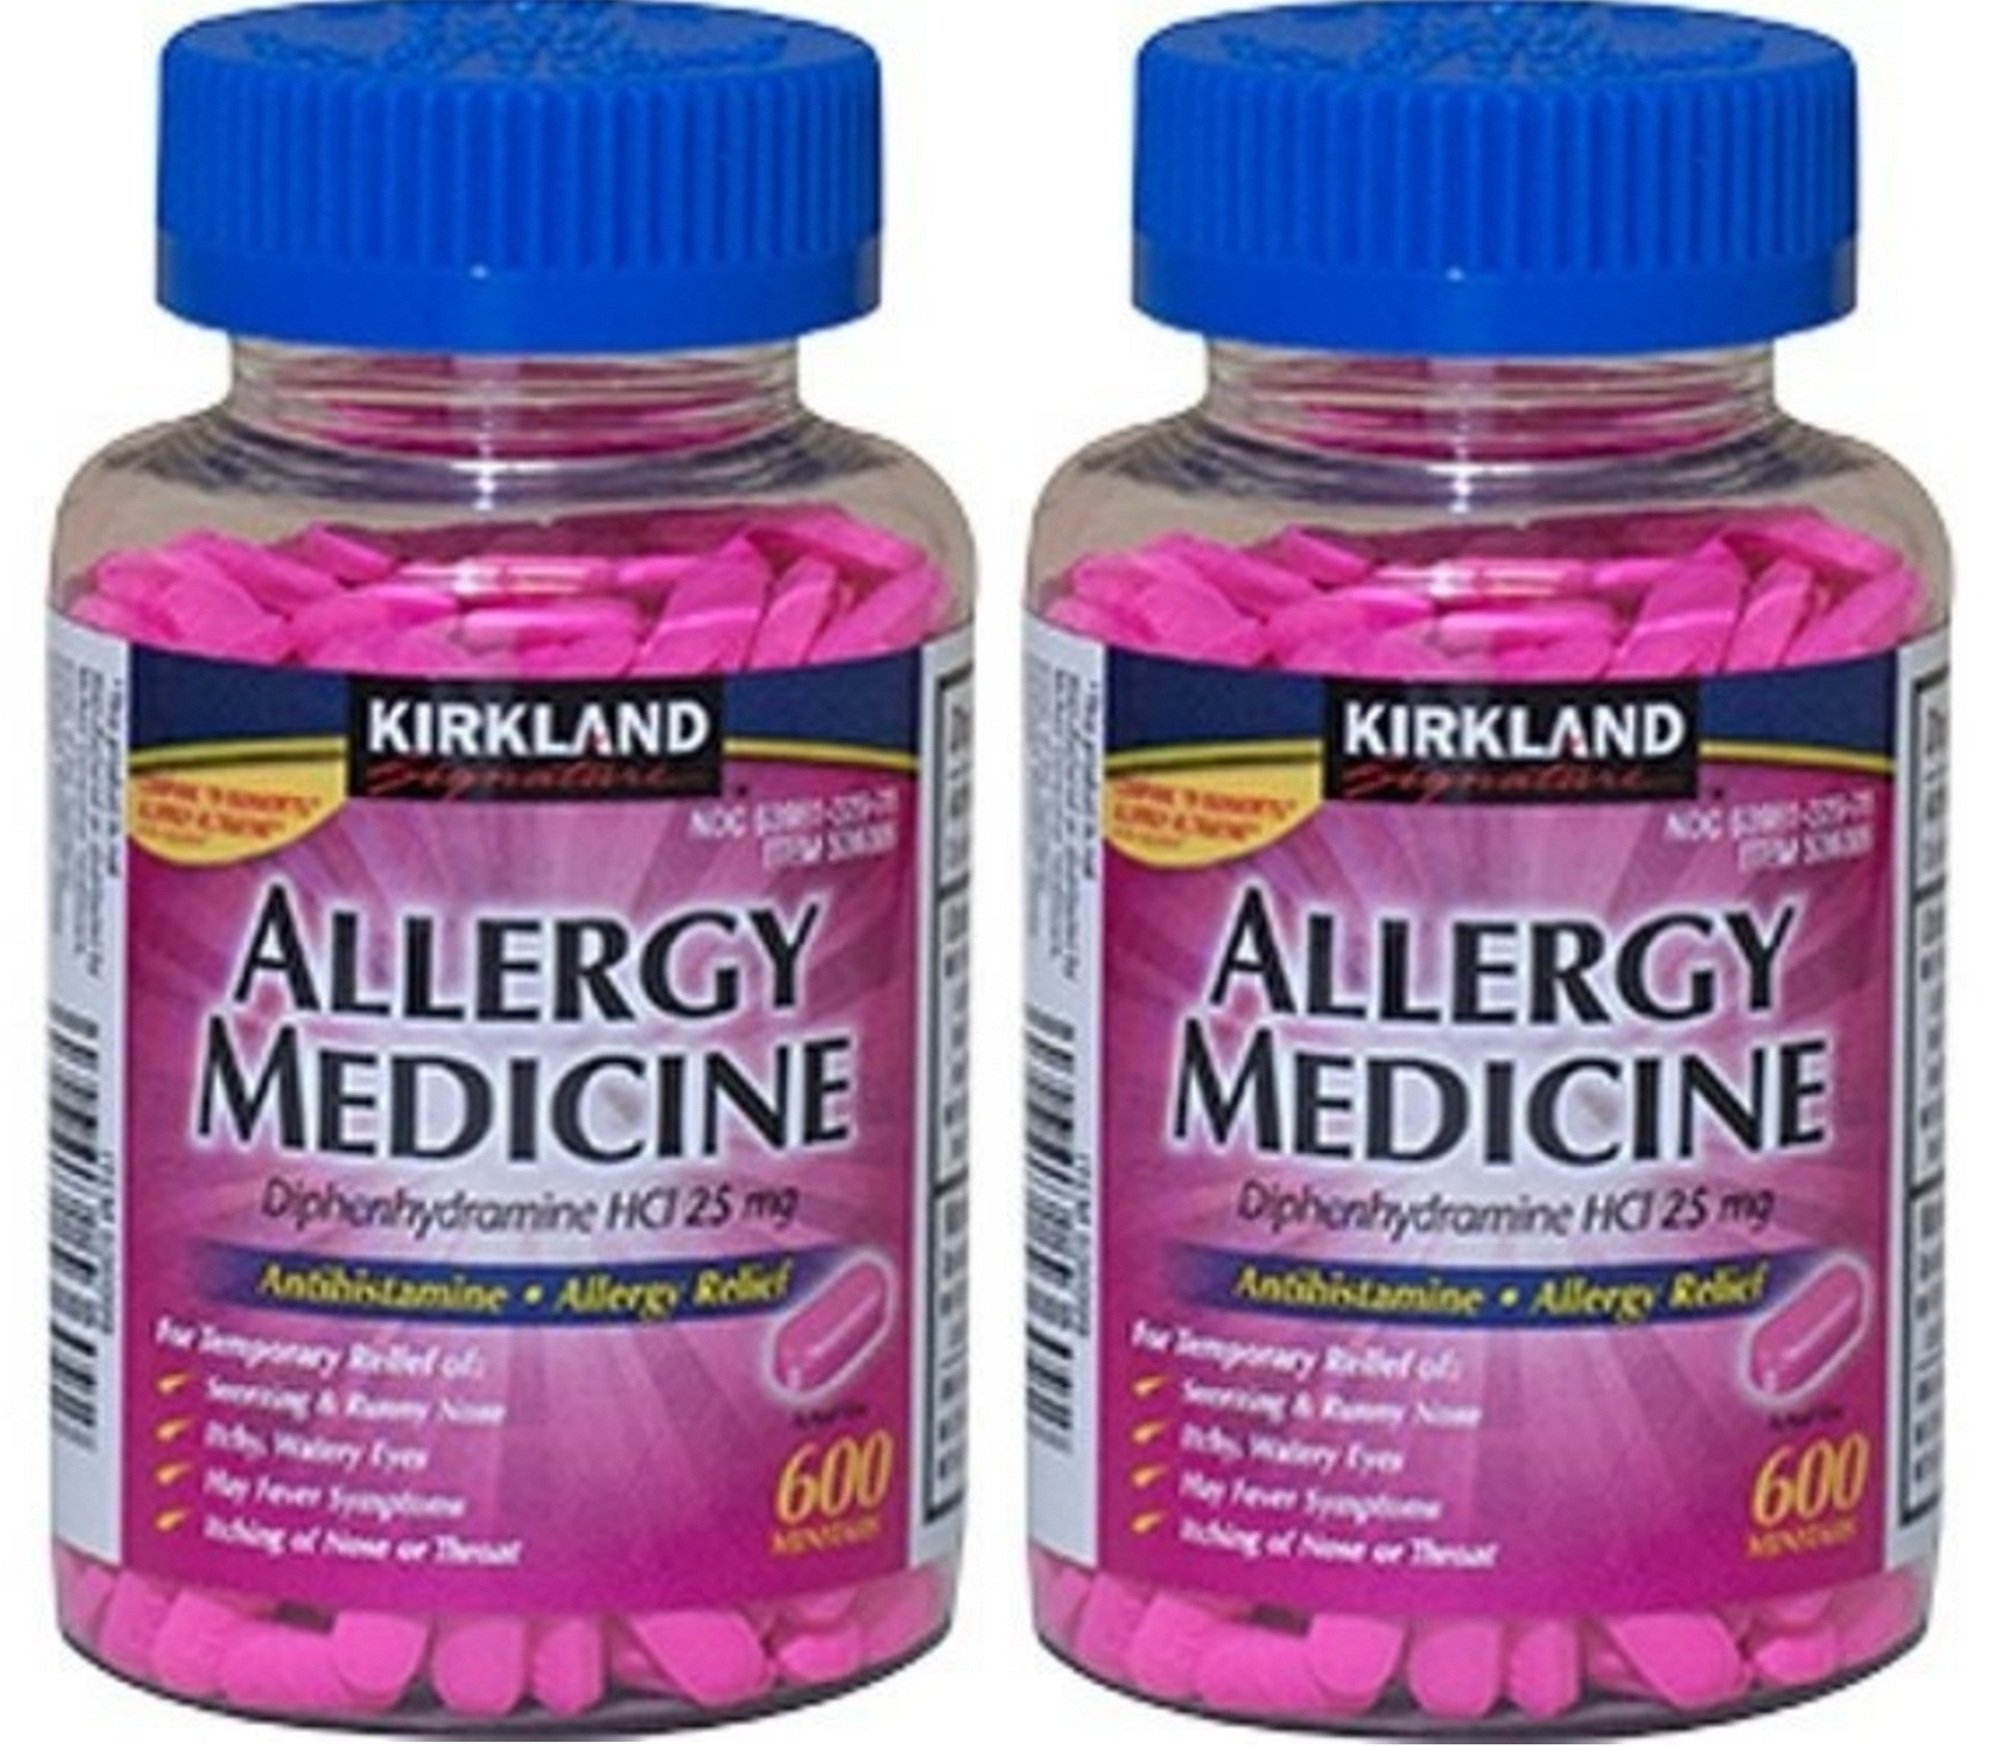 Diphenhydramine HCI 25 Mg - Kirkland Brand - Allergy Medicine and AntihistamineCompare to Active Ingredient of Benadryl® Allergy Generic 1200 count